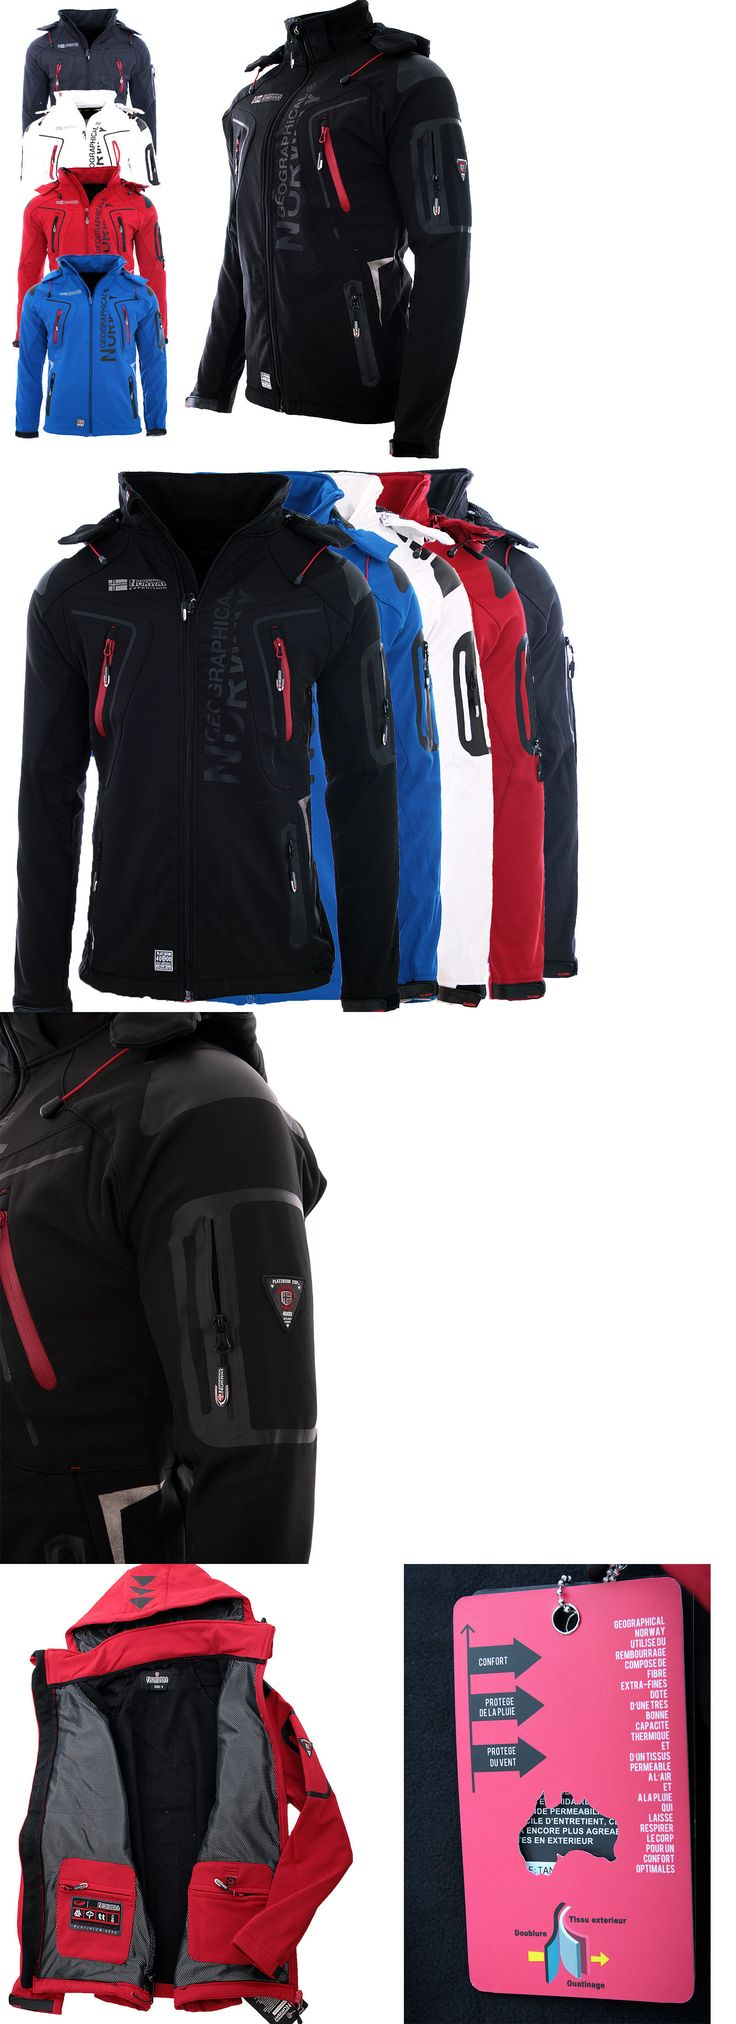 Coats and Jackets 181358: Geographical Norway Mens Softshell Jacket Rain Sports Outdoor Autumn Jacket -> BUY IT NOW ONLY: $74.3 on eBay!